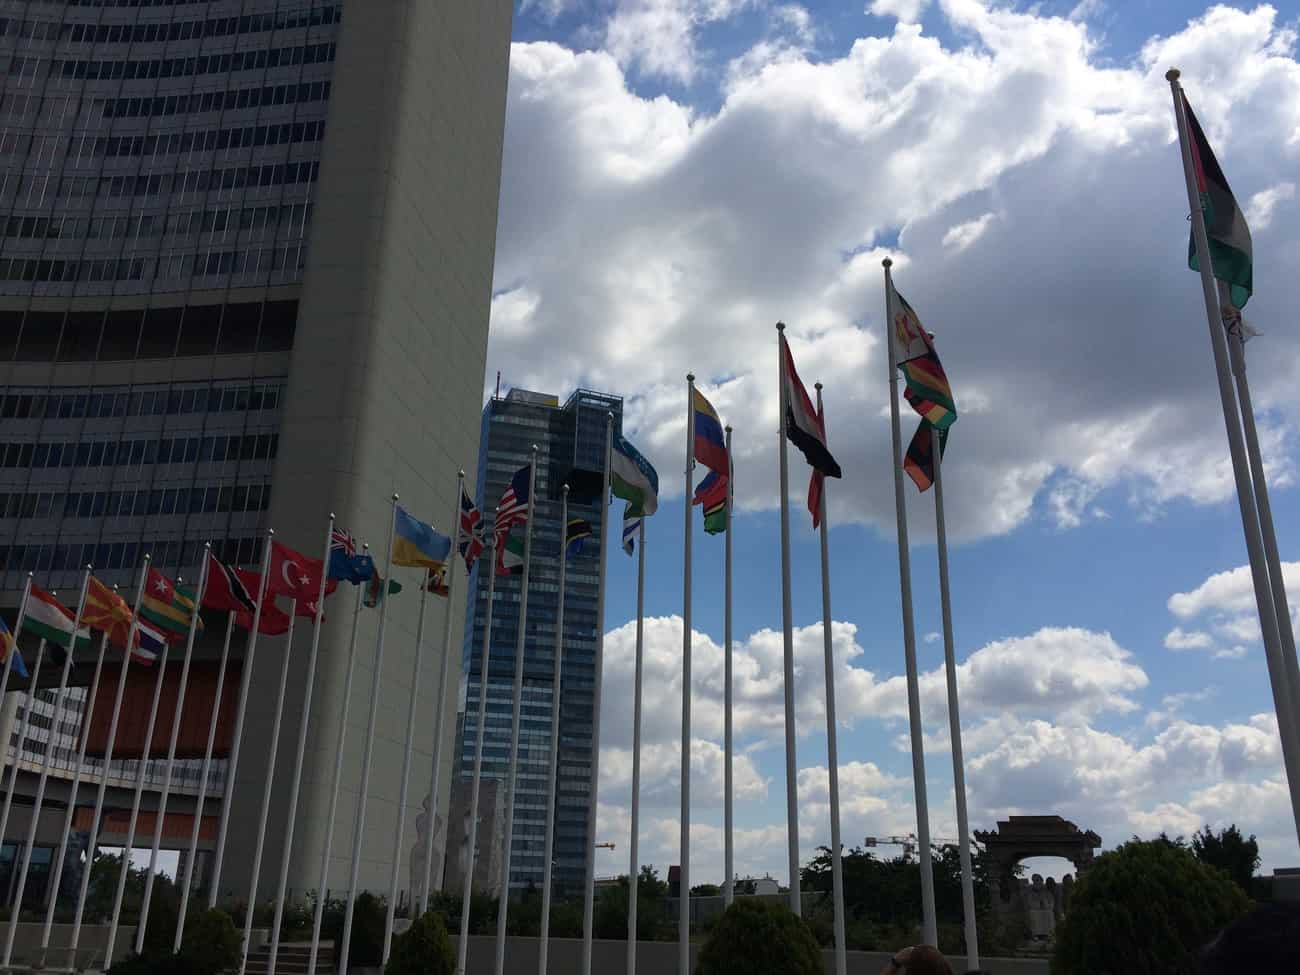 United Nations Vienna Tour Flags in Central Plaza